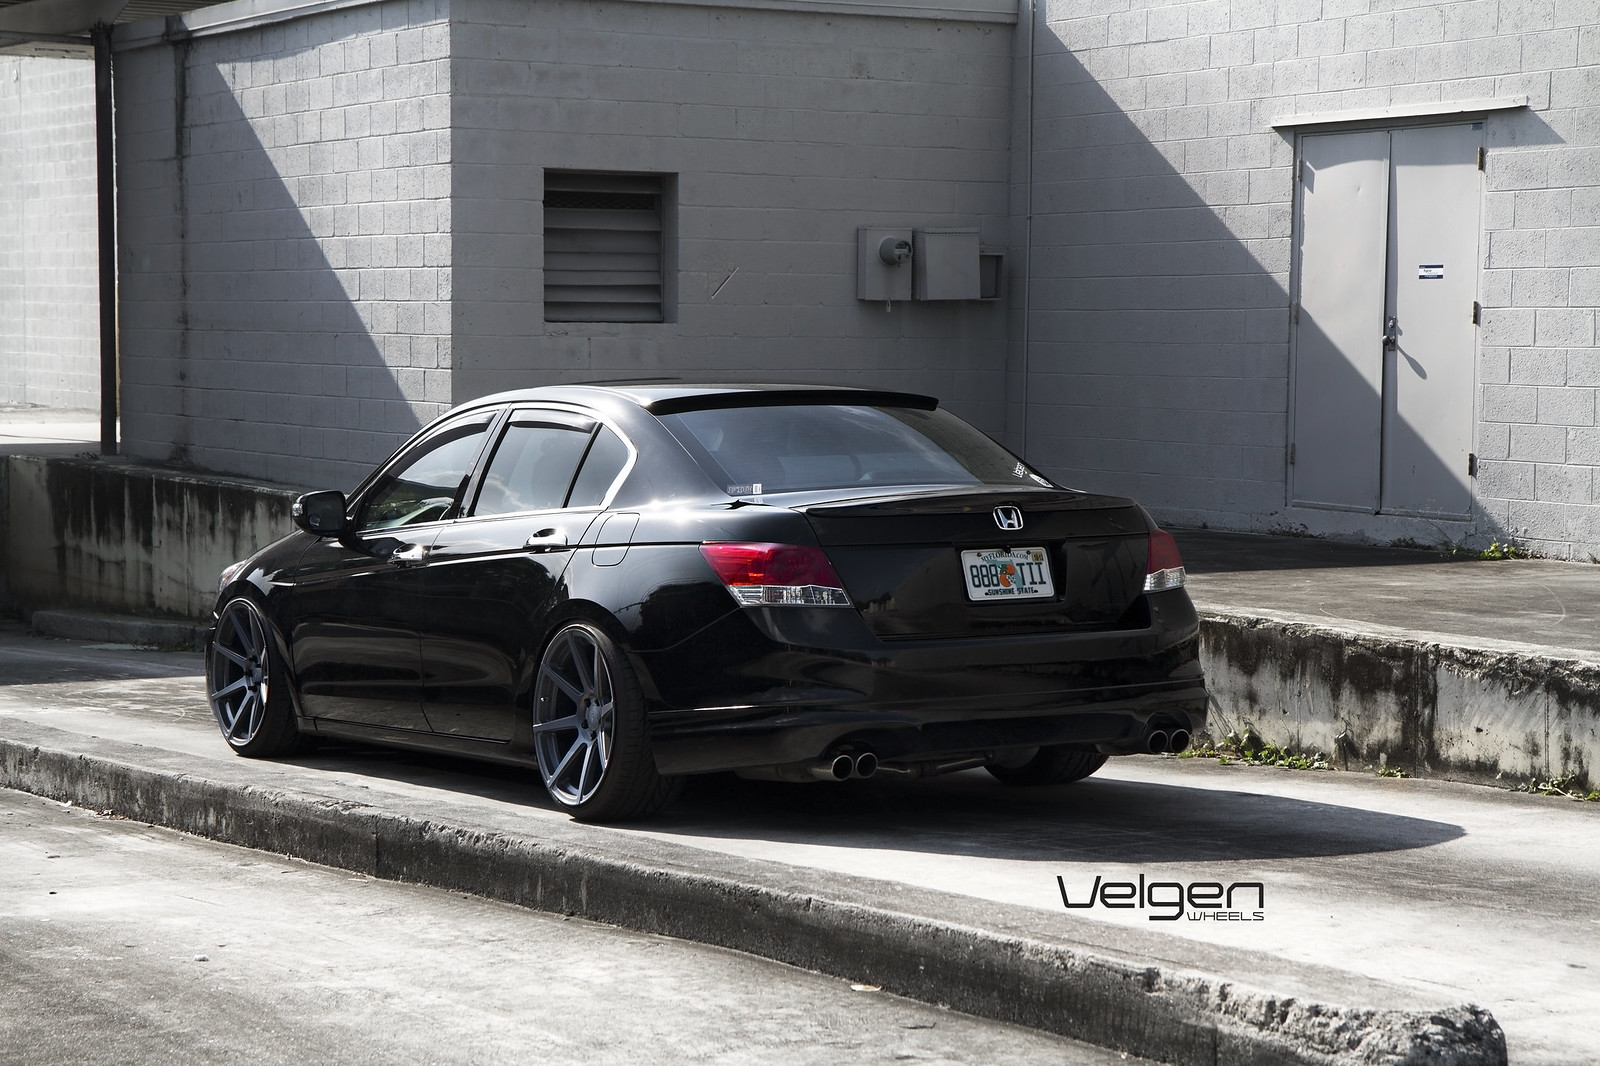 Who Own S This 8thgen Drive Accord Honda Forums